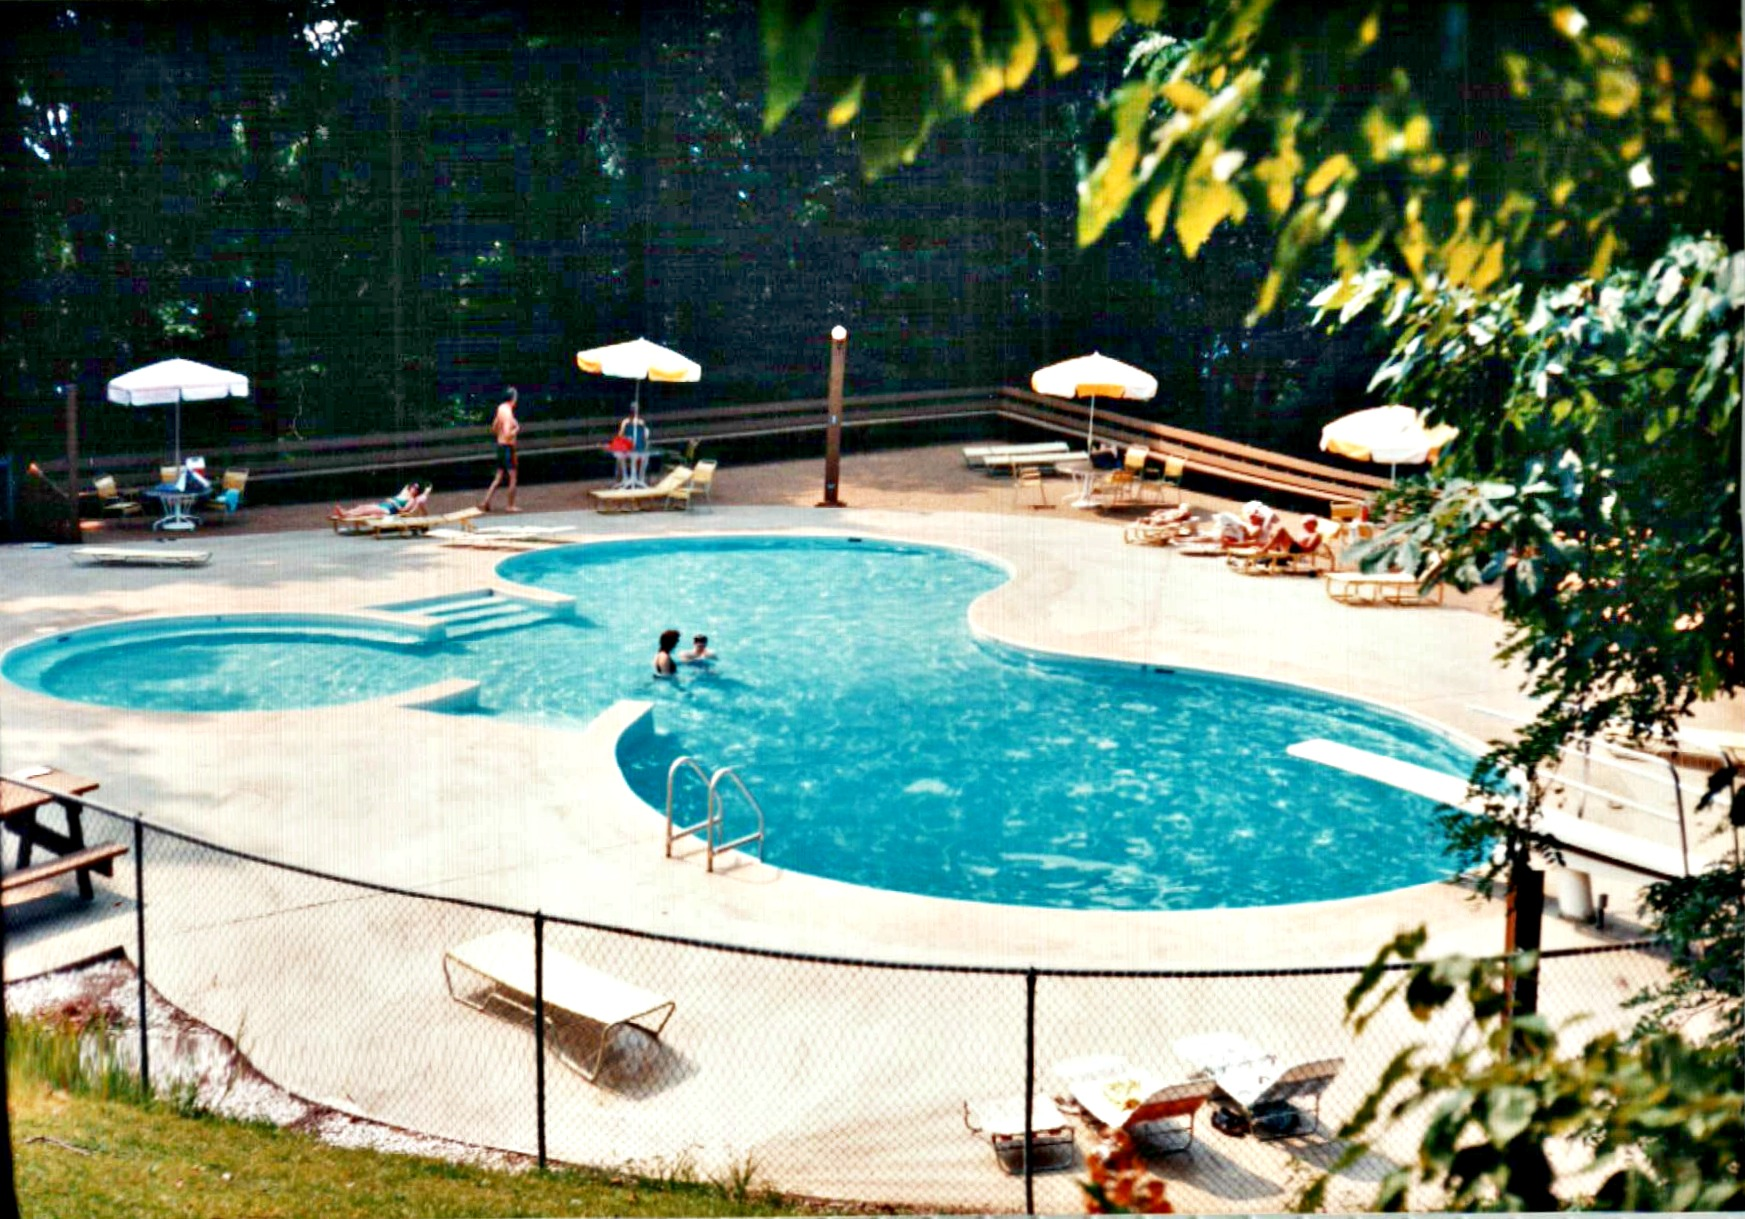 1991 - Lower Pool in Bent Tree